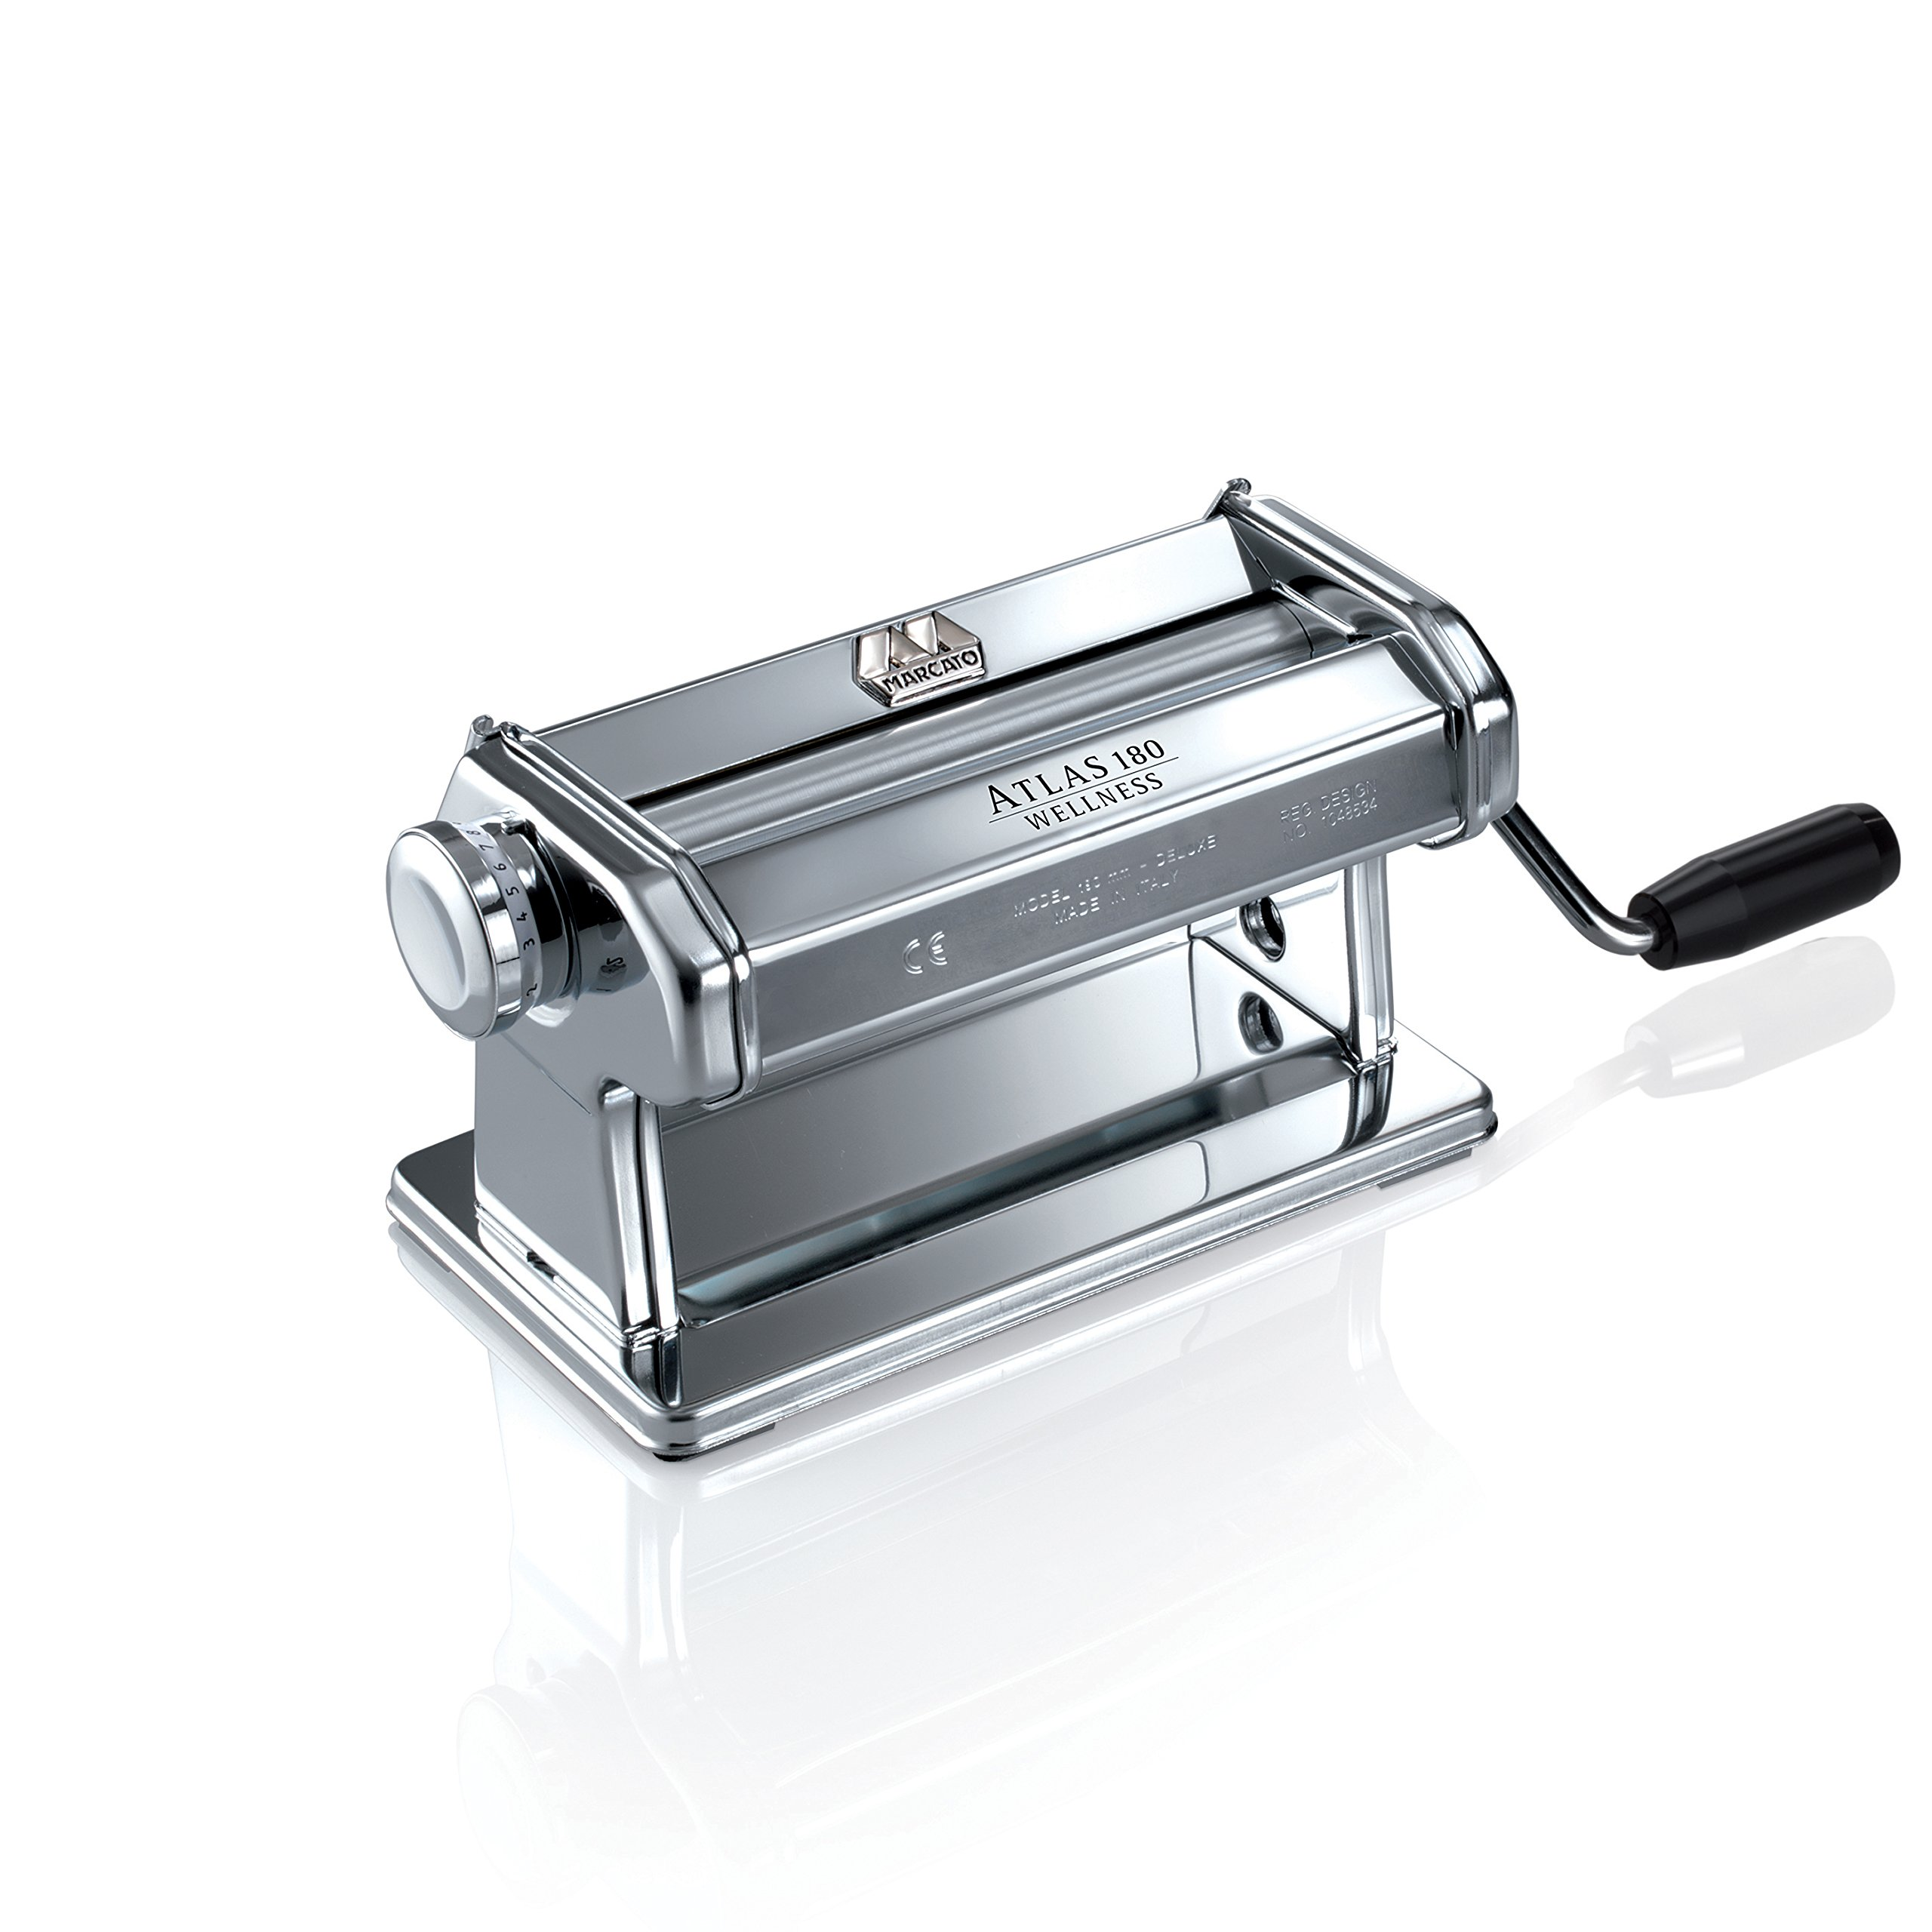 Marcato Atlas Pasta Roller, Includes Extra Wide 180-Millimeter Pasta Roller with Hand Crank and Instructions